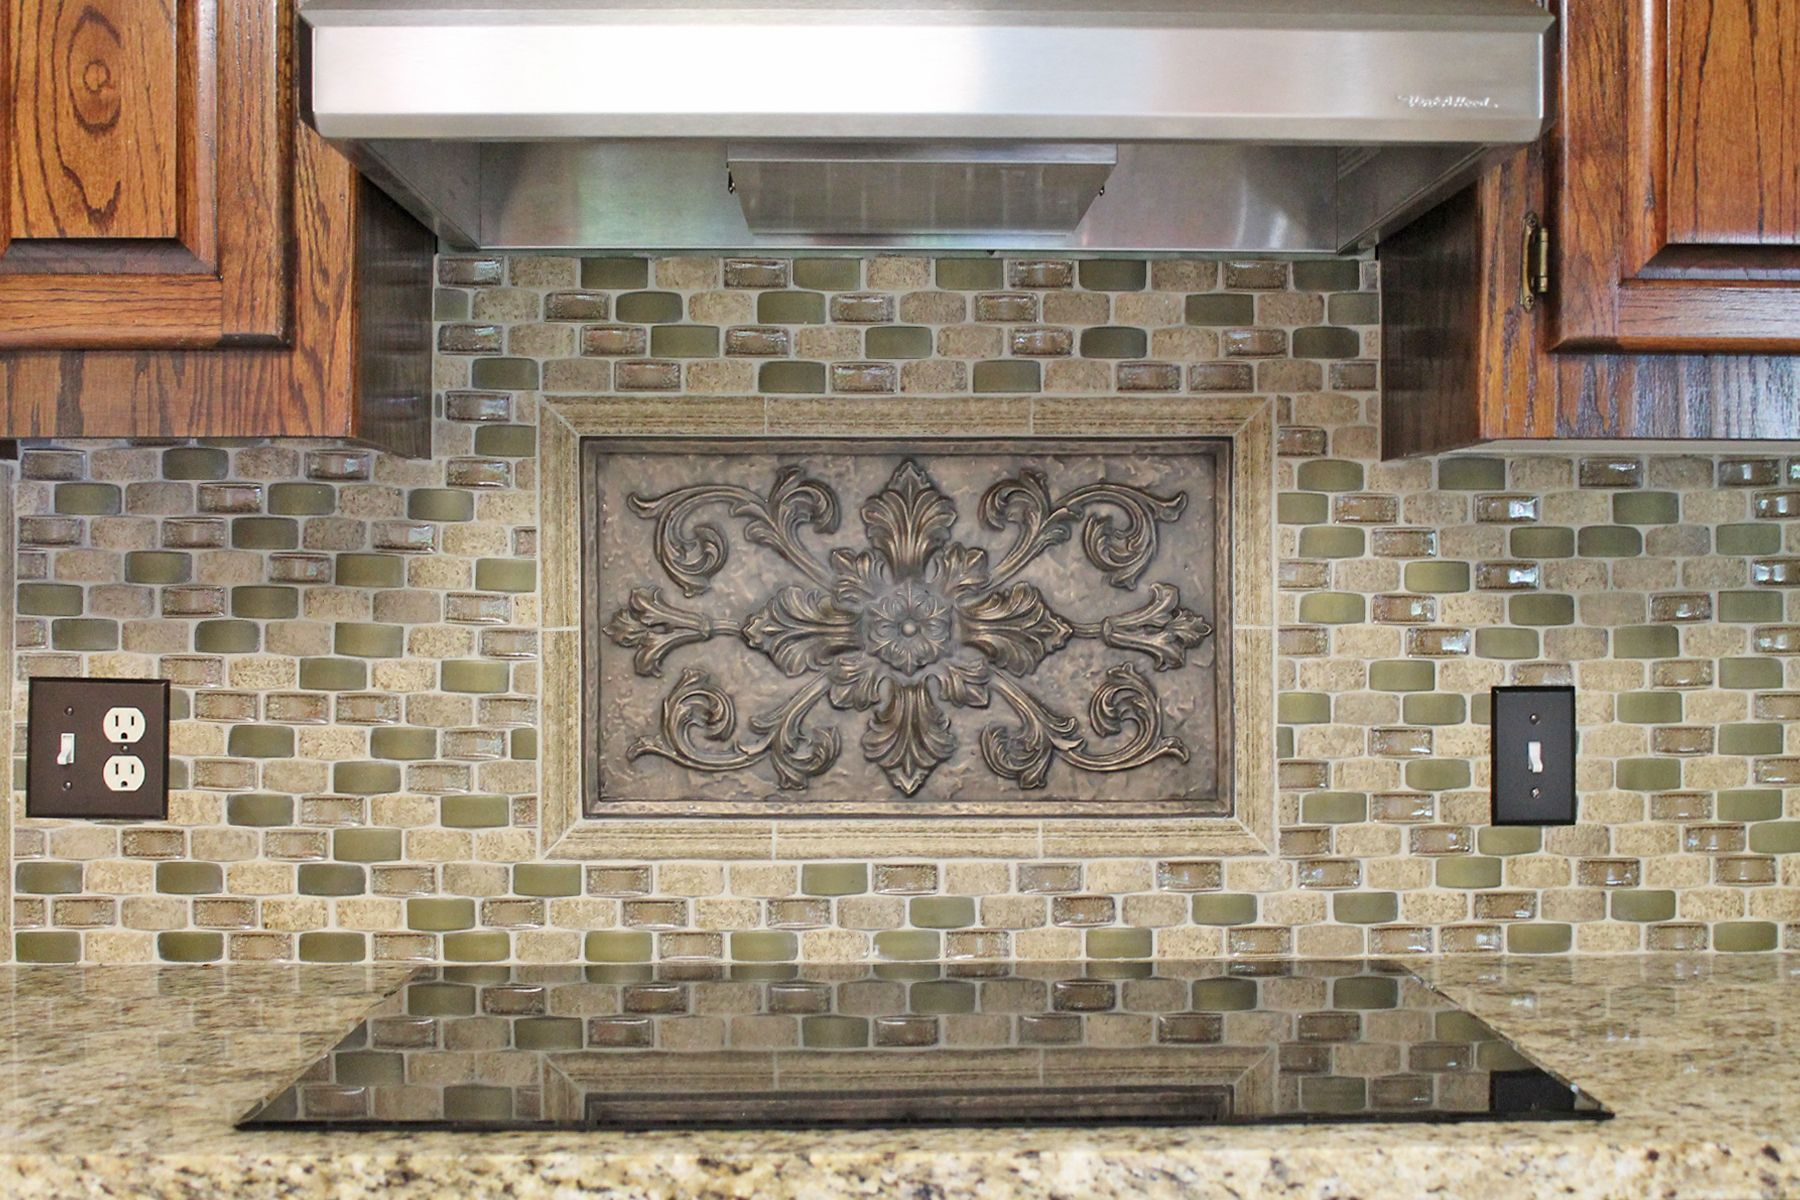 Kitchen backsplash idea graytaupegreen mosaic tile with bronze kitchen backsplash idea graytaupegreen mosaic tile with bronze accent piece dailygadgetfo Image collections